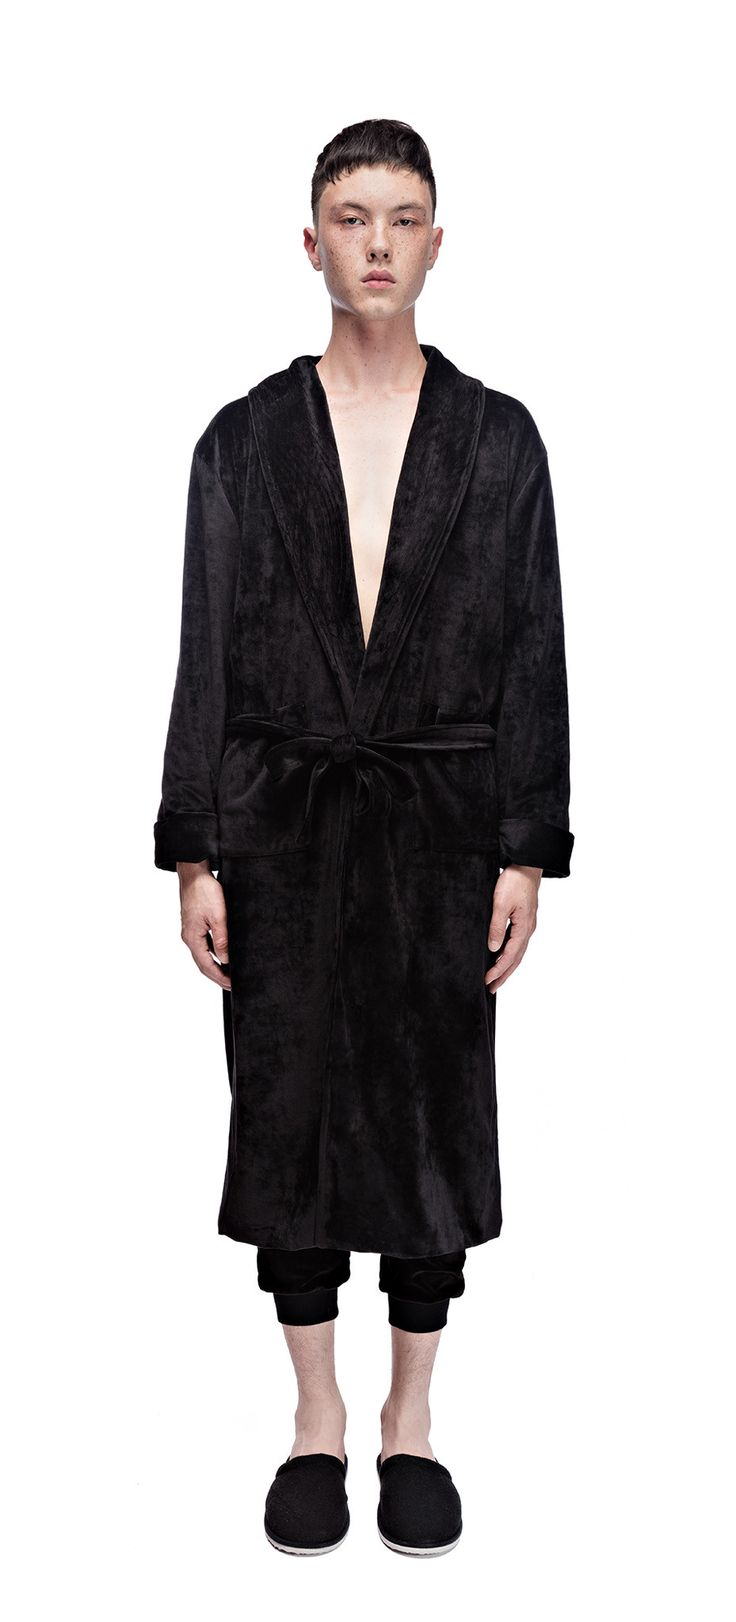 Atelier New Regime x Off The Hook collaboration Velour Bathrobe in black. #ateliernewregime #newregime #FW16